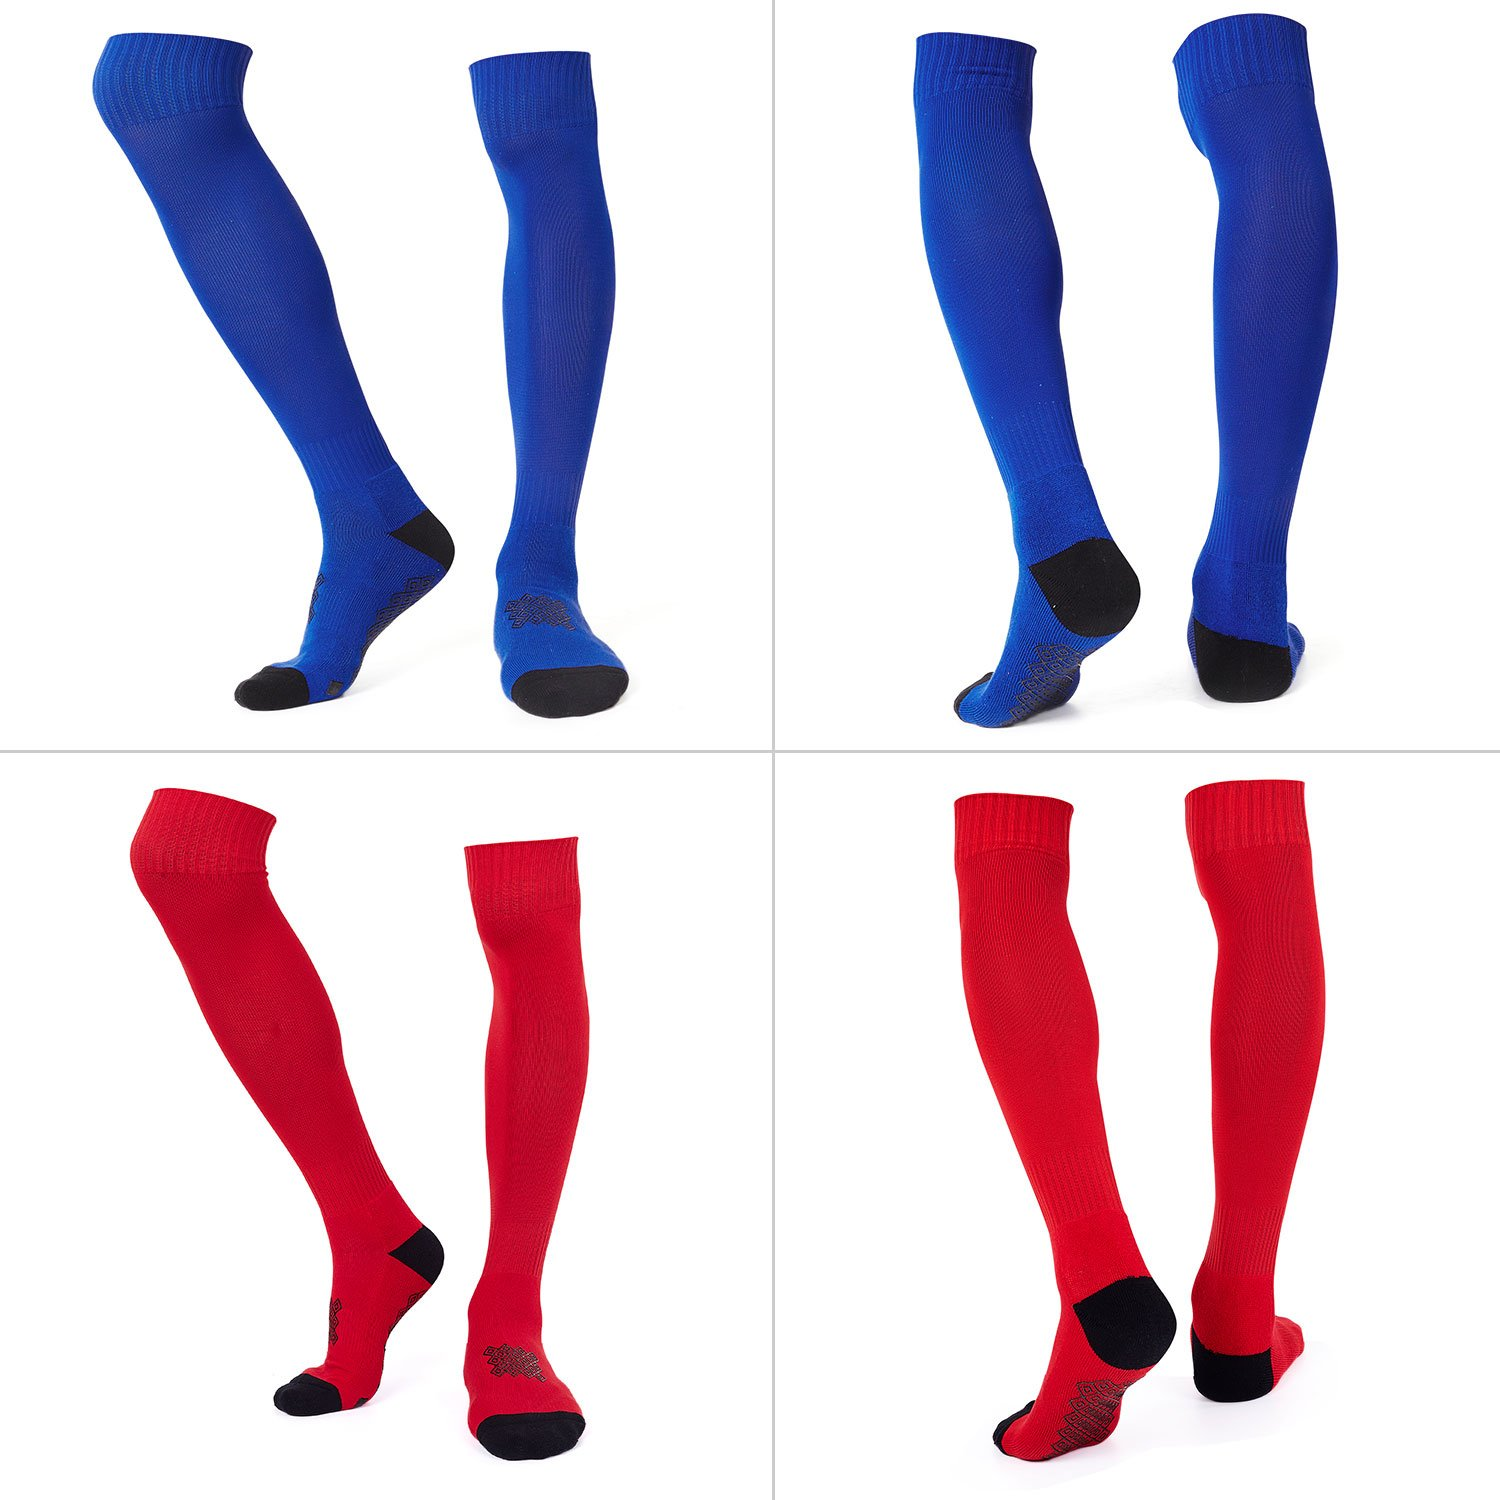 Diealles 2 Pairs Mens Cushioned Support Football Socks Kids Non Slip Long Compression Sock